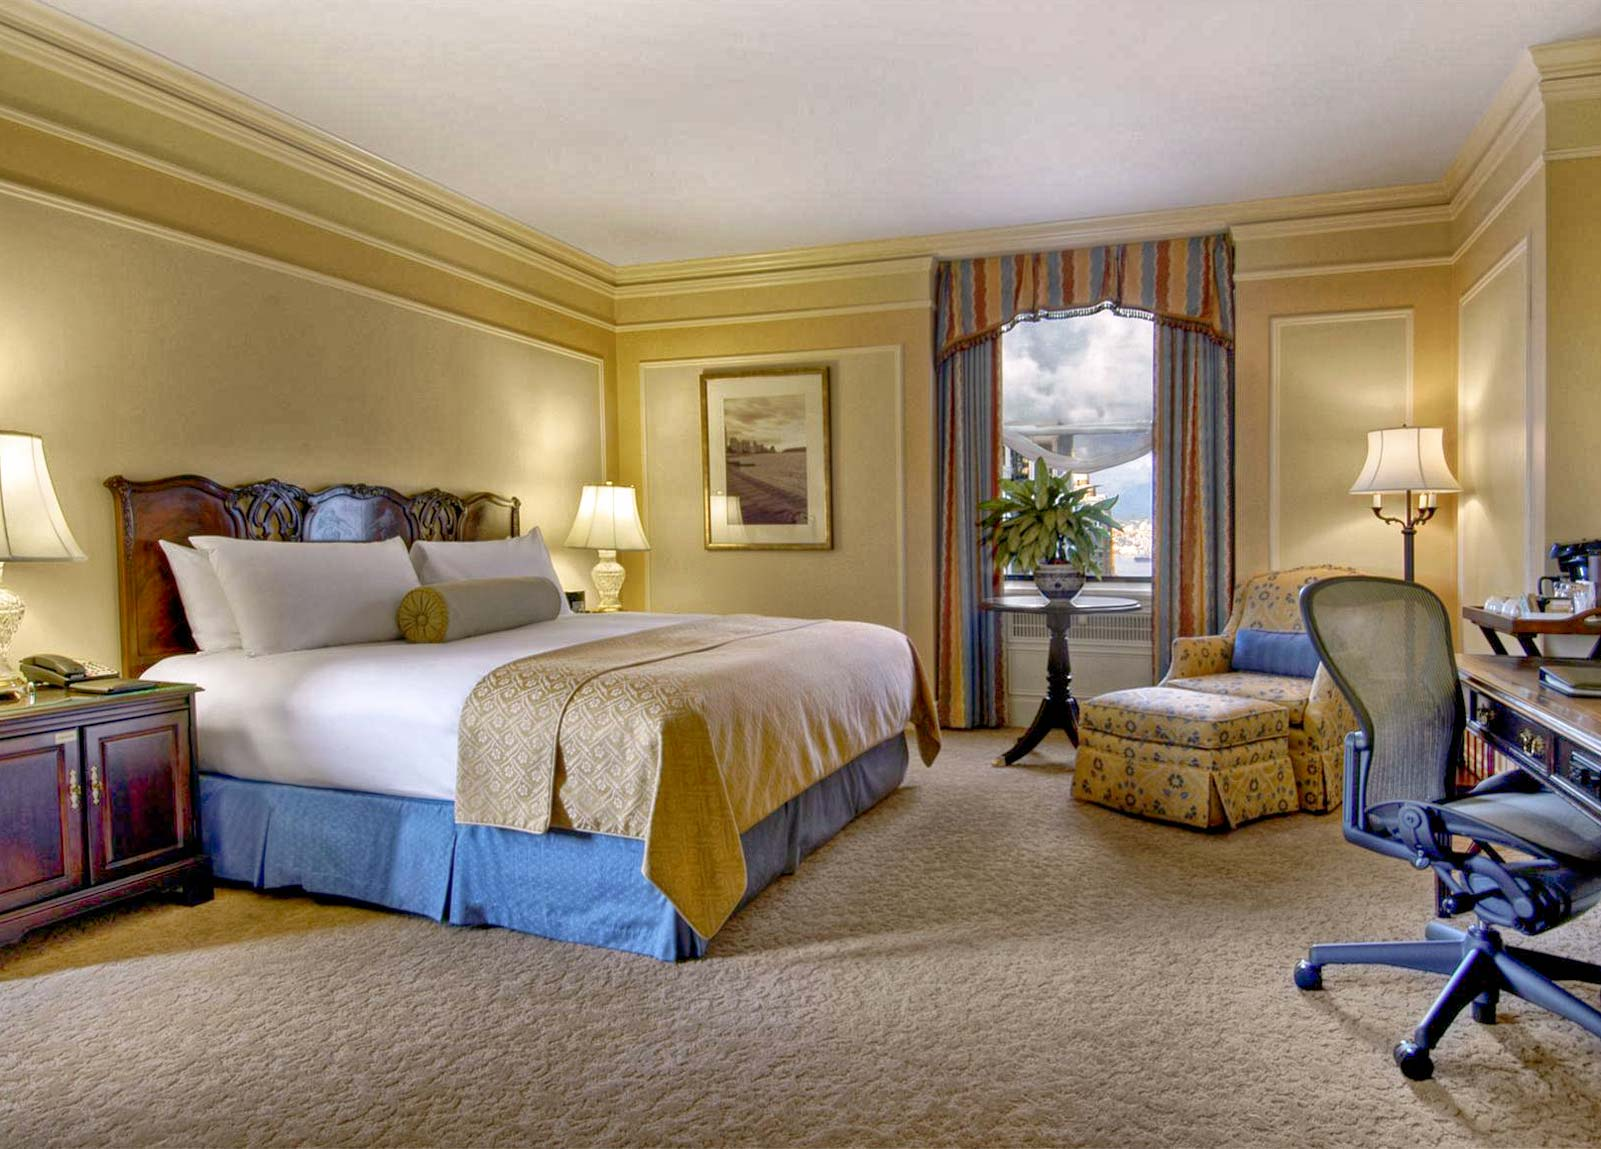 Fairmont Hotel Rooms